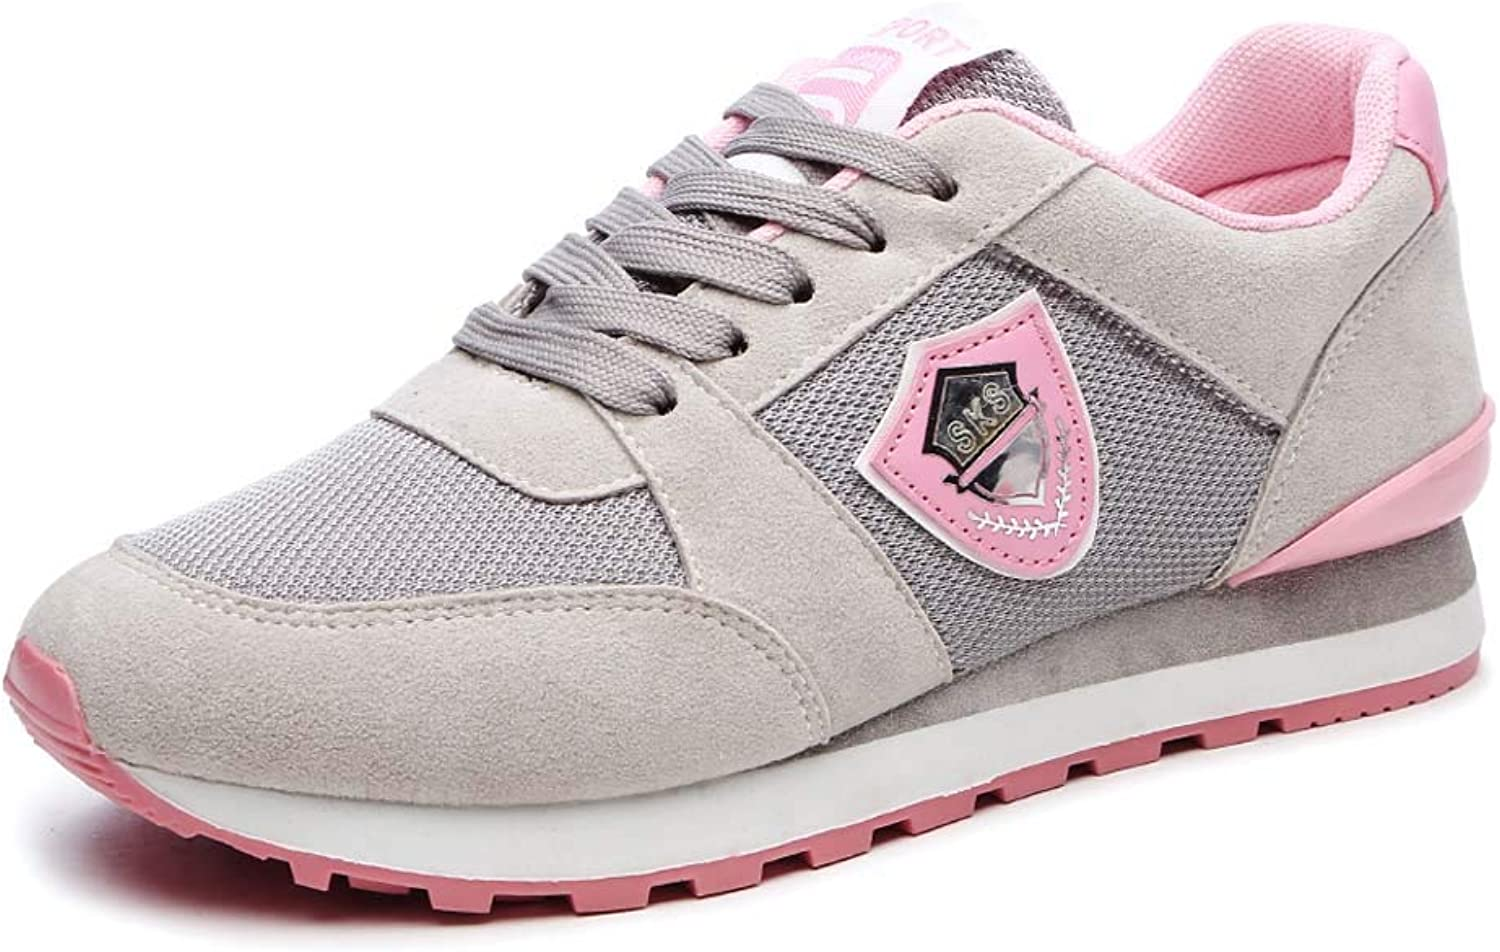 Women's Running shoes, Sports shoes, air Cushion Sports shoes, Lightweight Gym Fitness Walking shoes